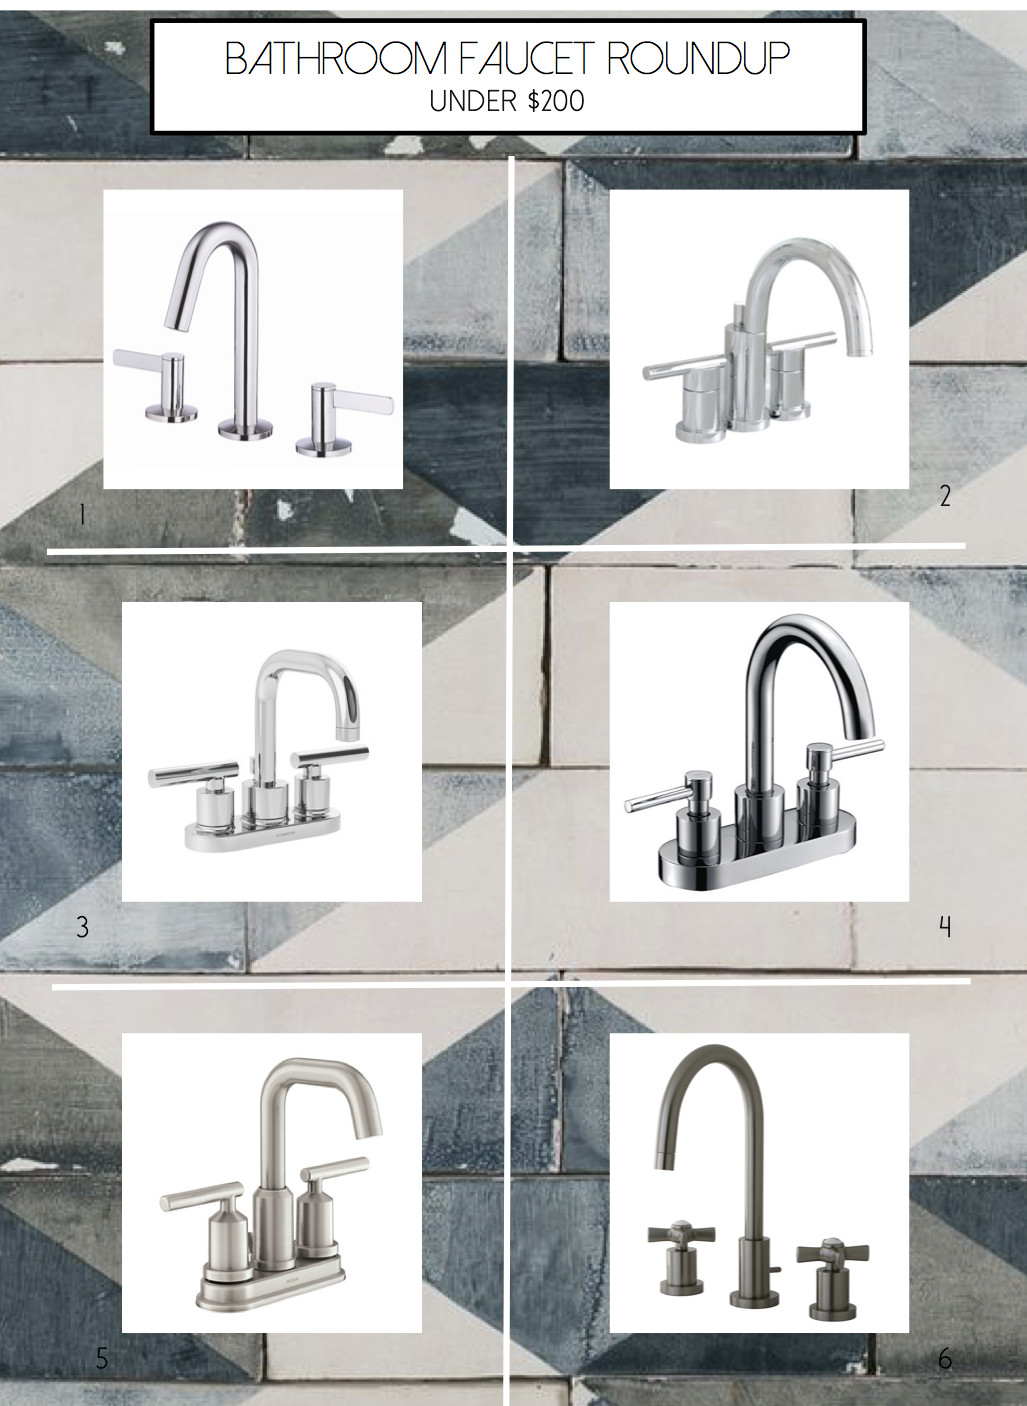 Bathroom Faucet Roundup | Under $200